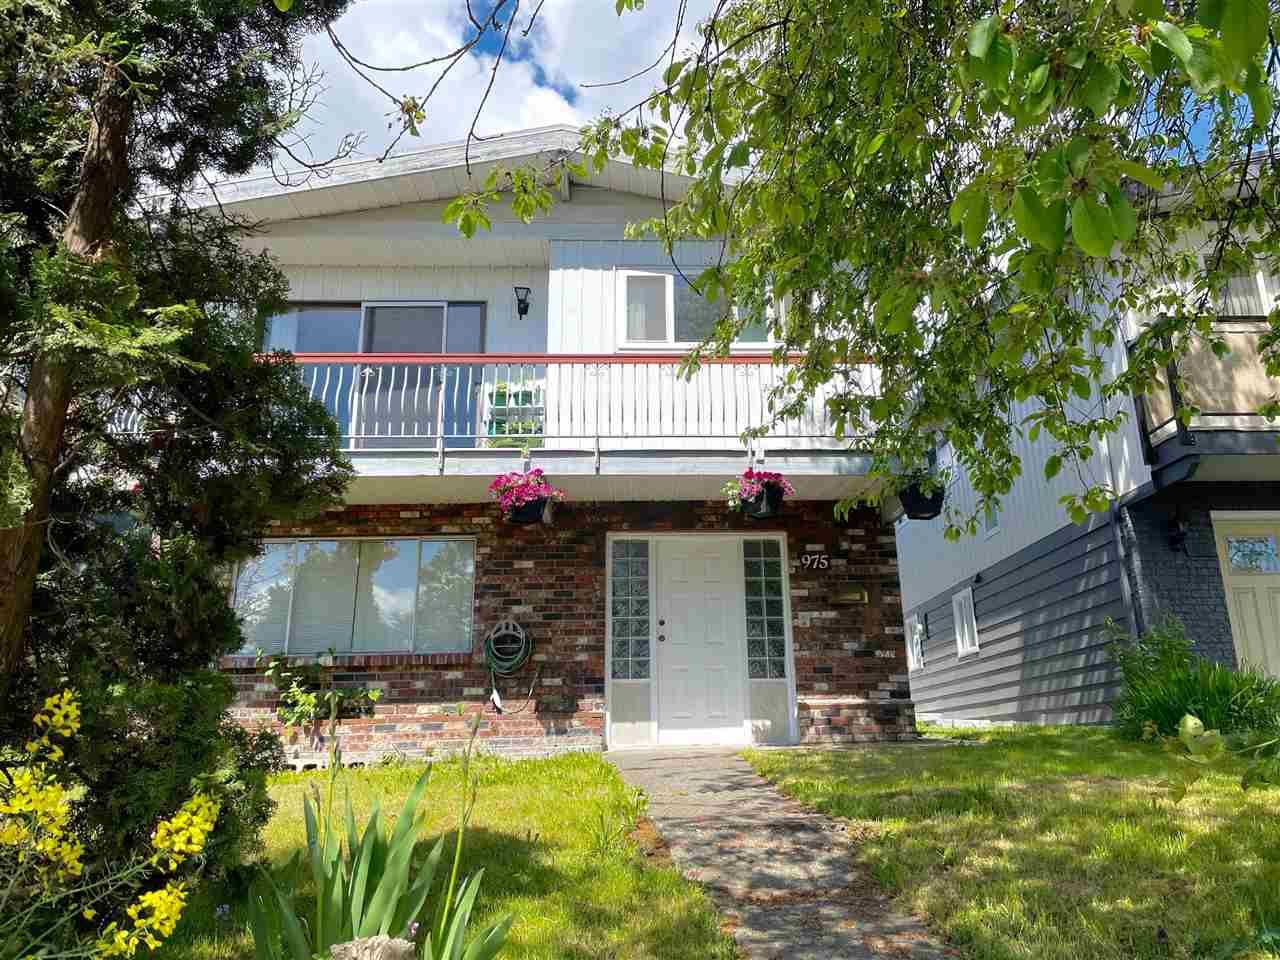 Main Photo: 975 SE MARINE Drive in Vancouver: South Vancouver House for sale (Vancouver East)  : MLS®# R2573423